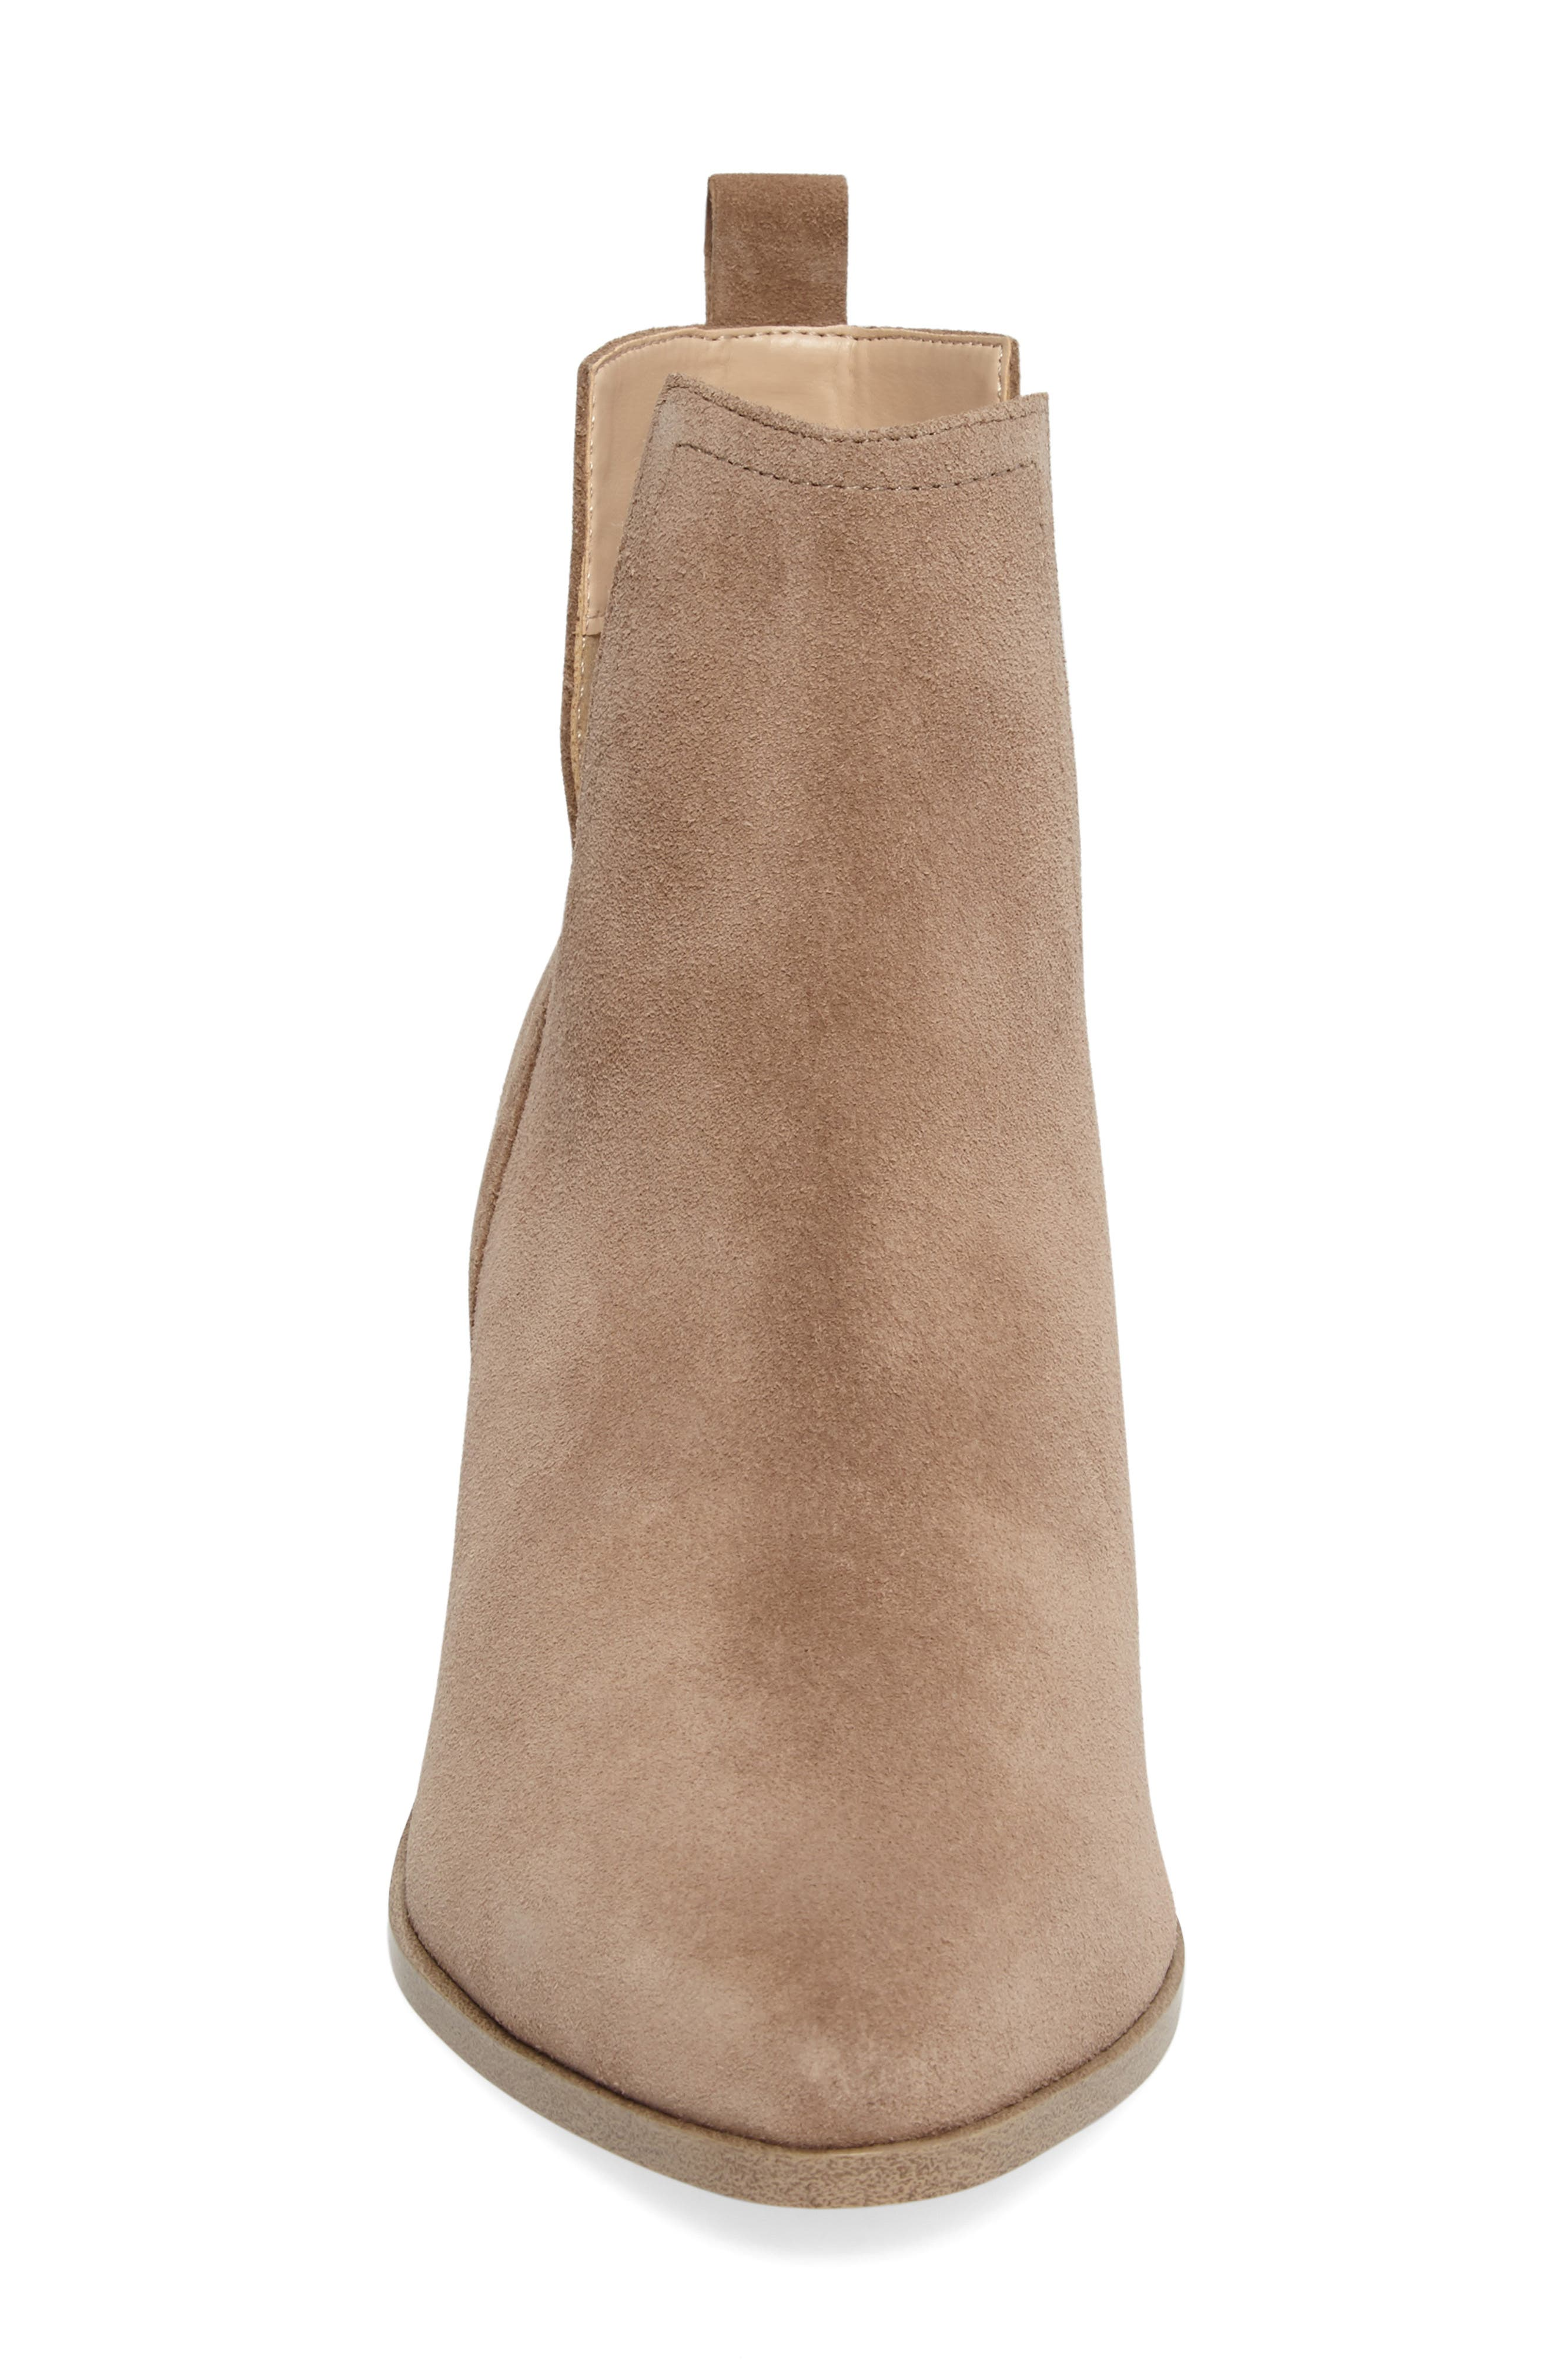 Madrid Bootie,                             Alternate thumbnail 4, color,                             Sand Suede